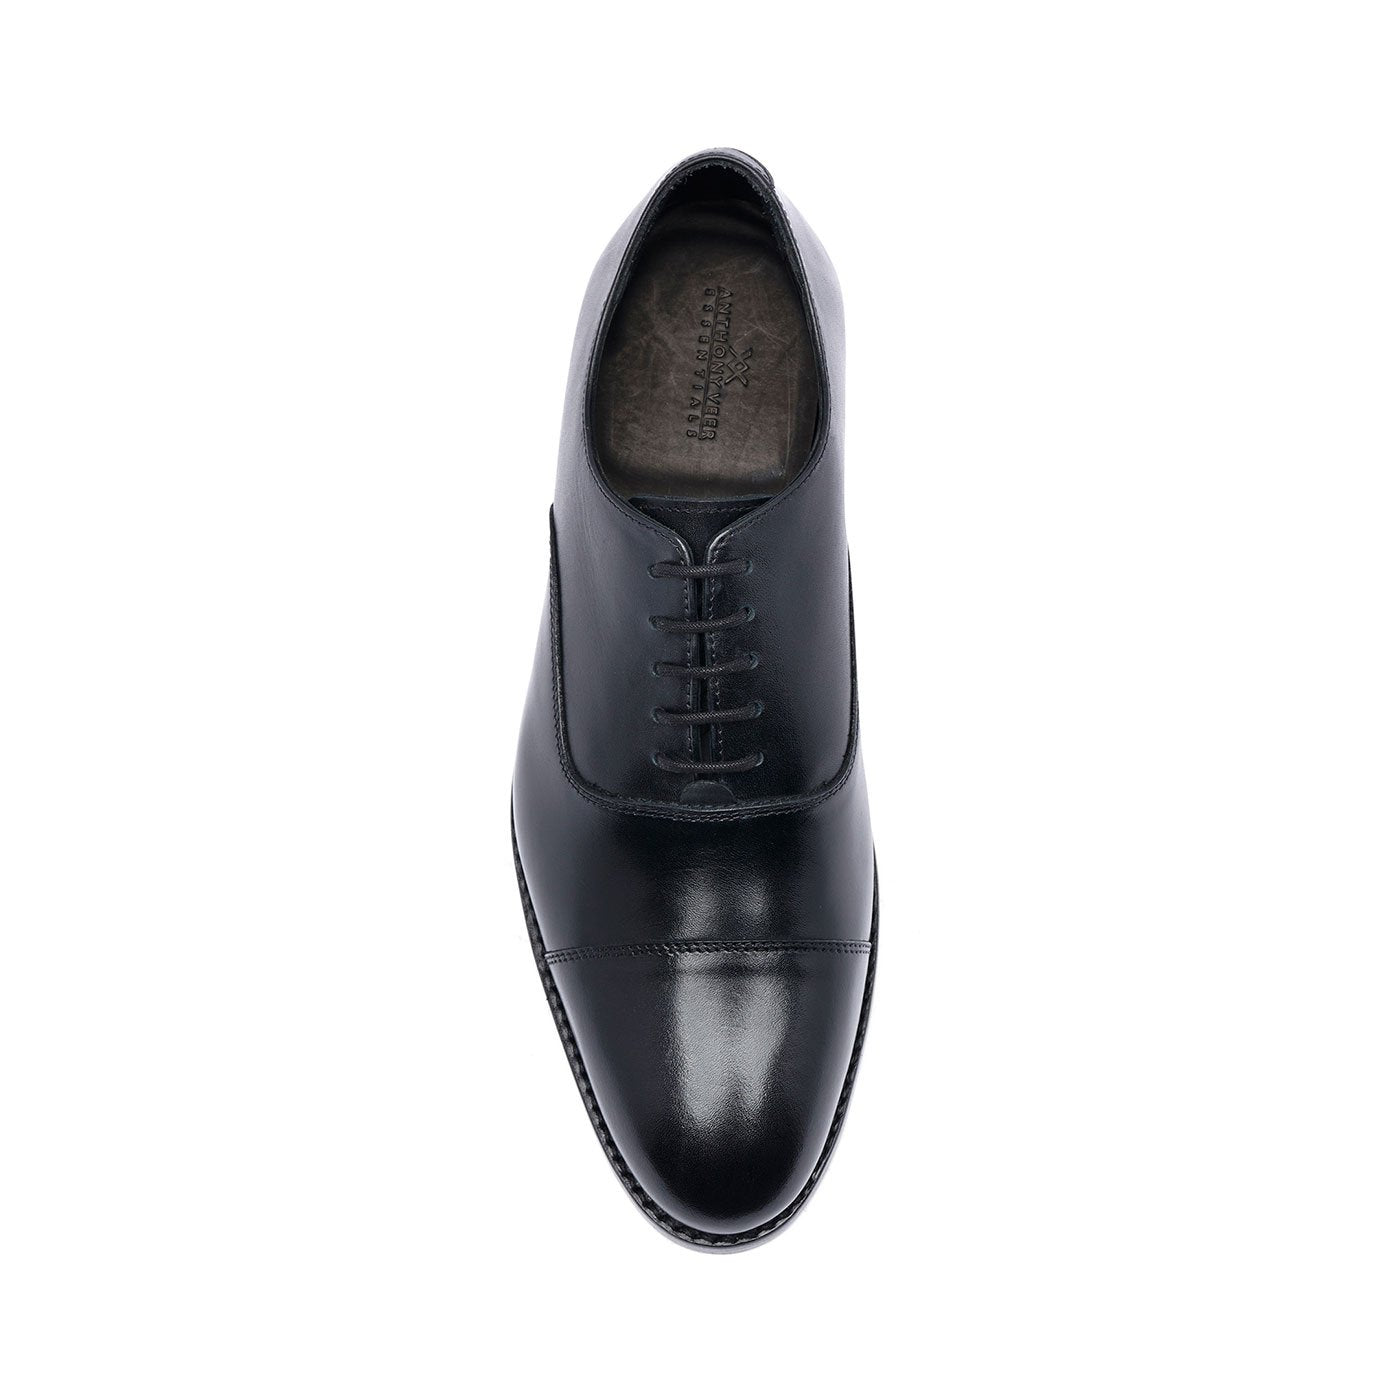 Clinton Cap-toe Oxford Black